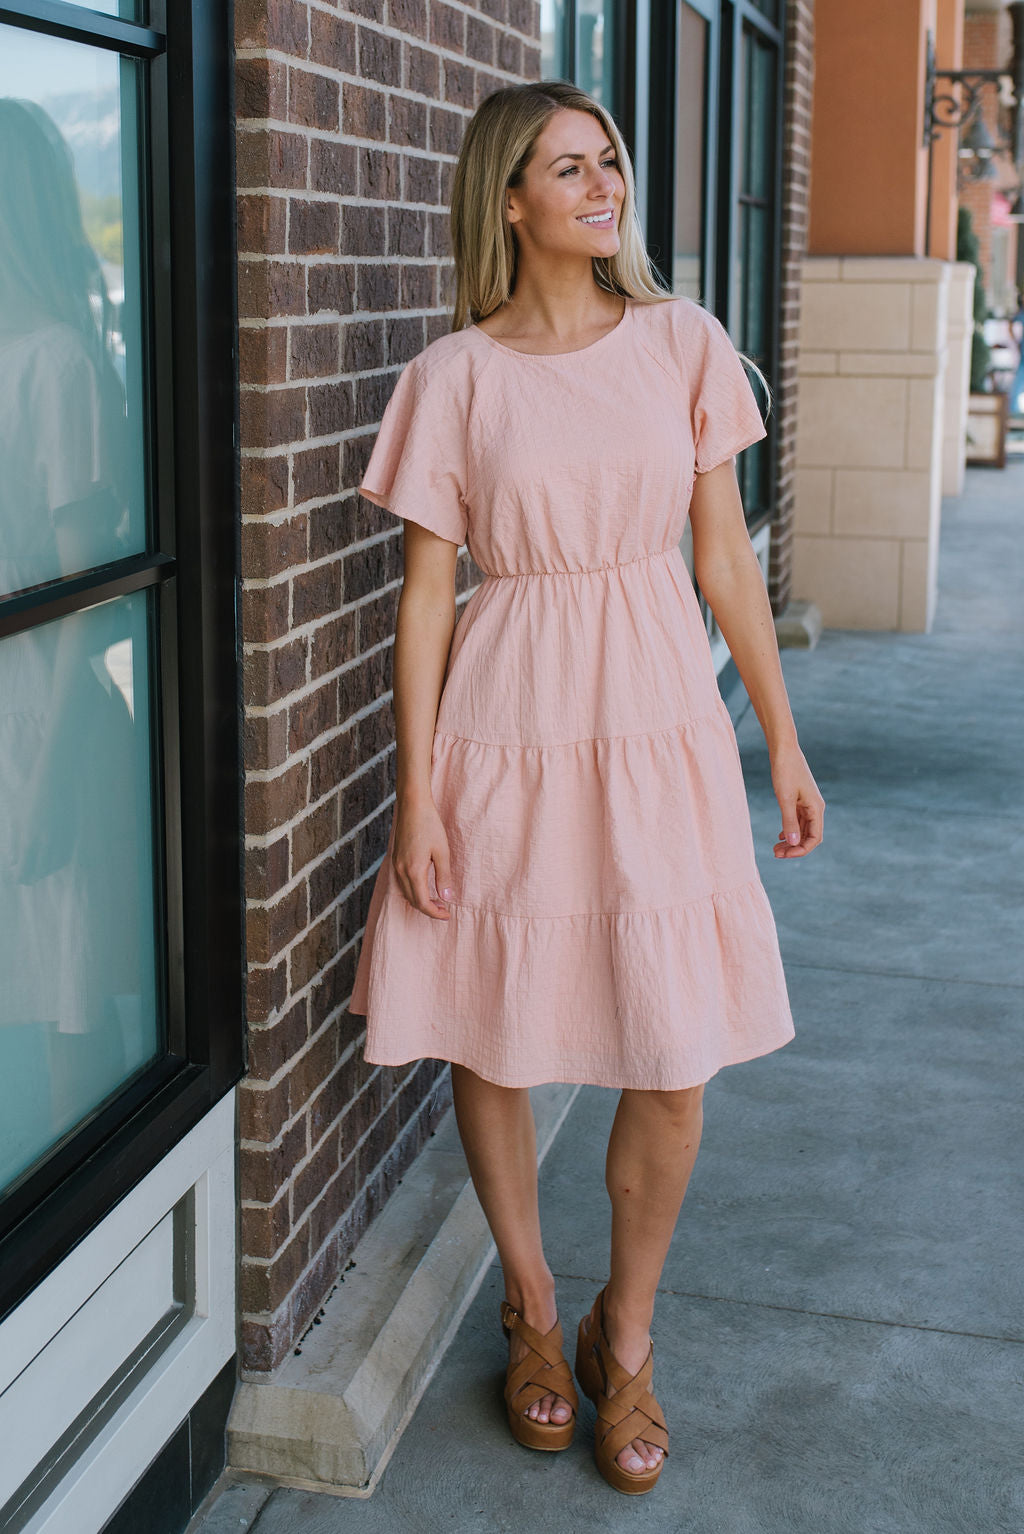 LESLIE TIERED SKIRT MIDI DRESS IN BLUSH